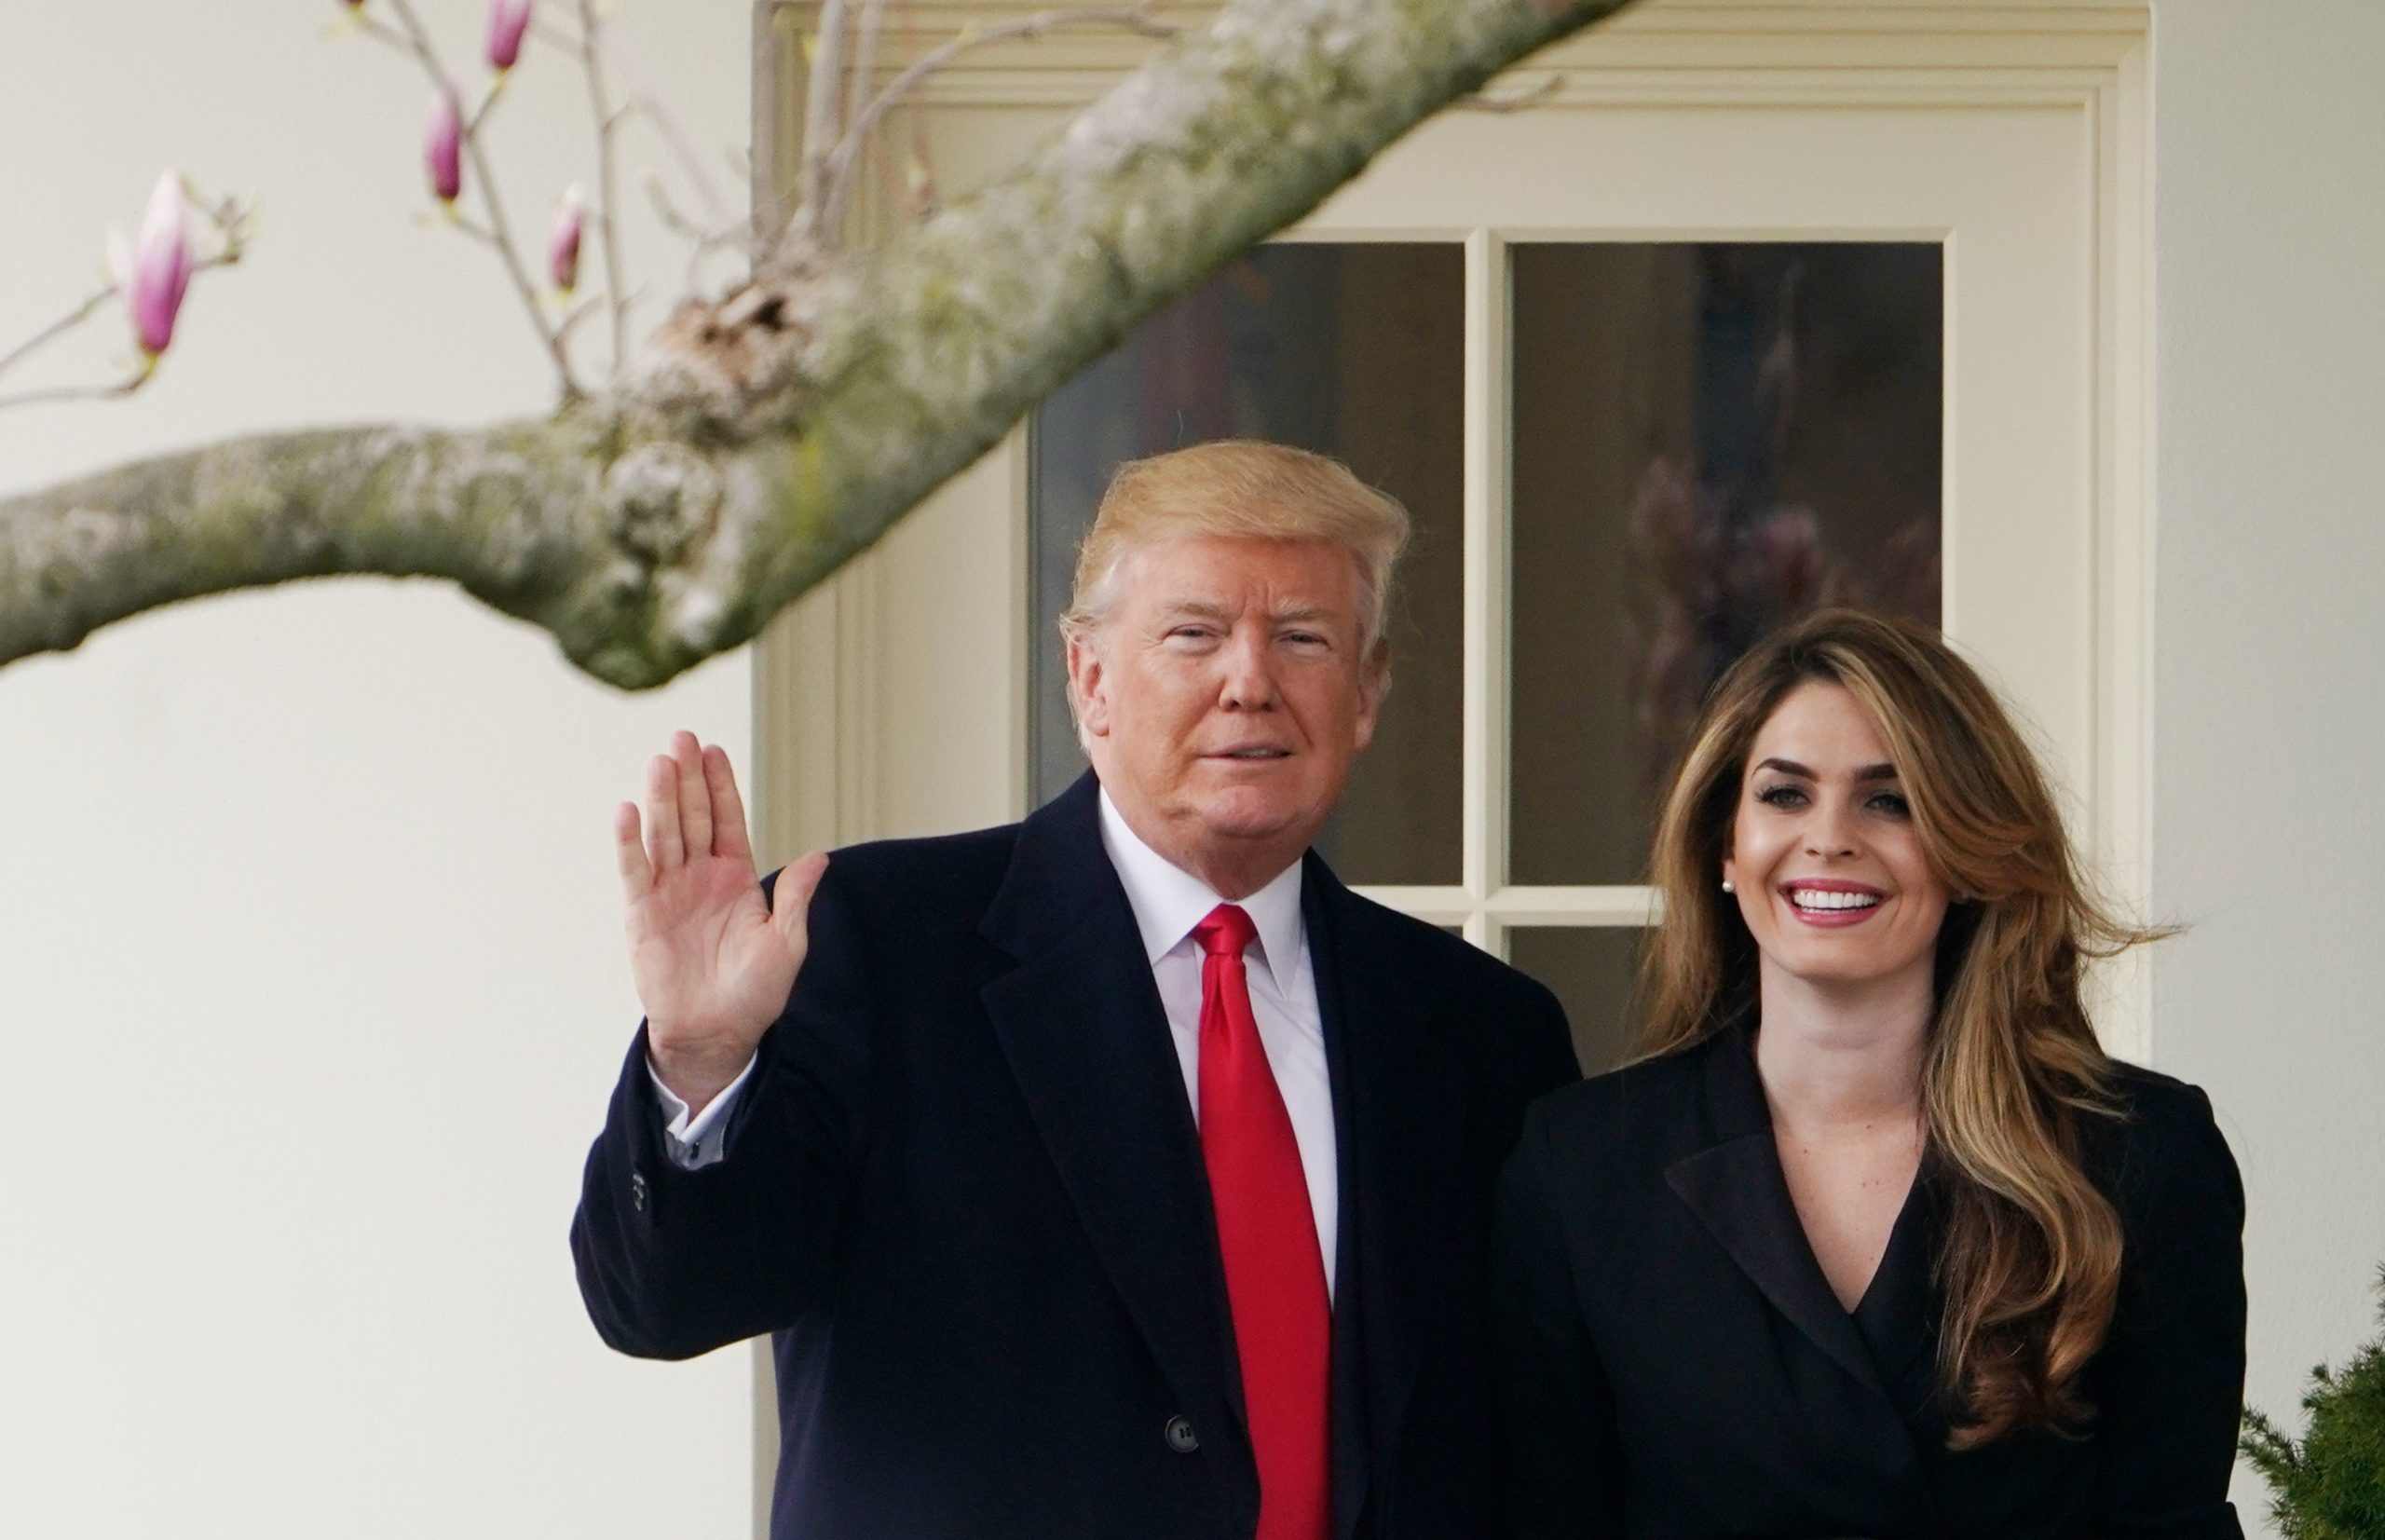 President Donald Trump poses with Hope Hicks at the White House in 2018. (Mandel Ngan/AFP via Getty Images)